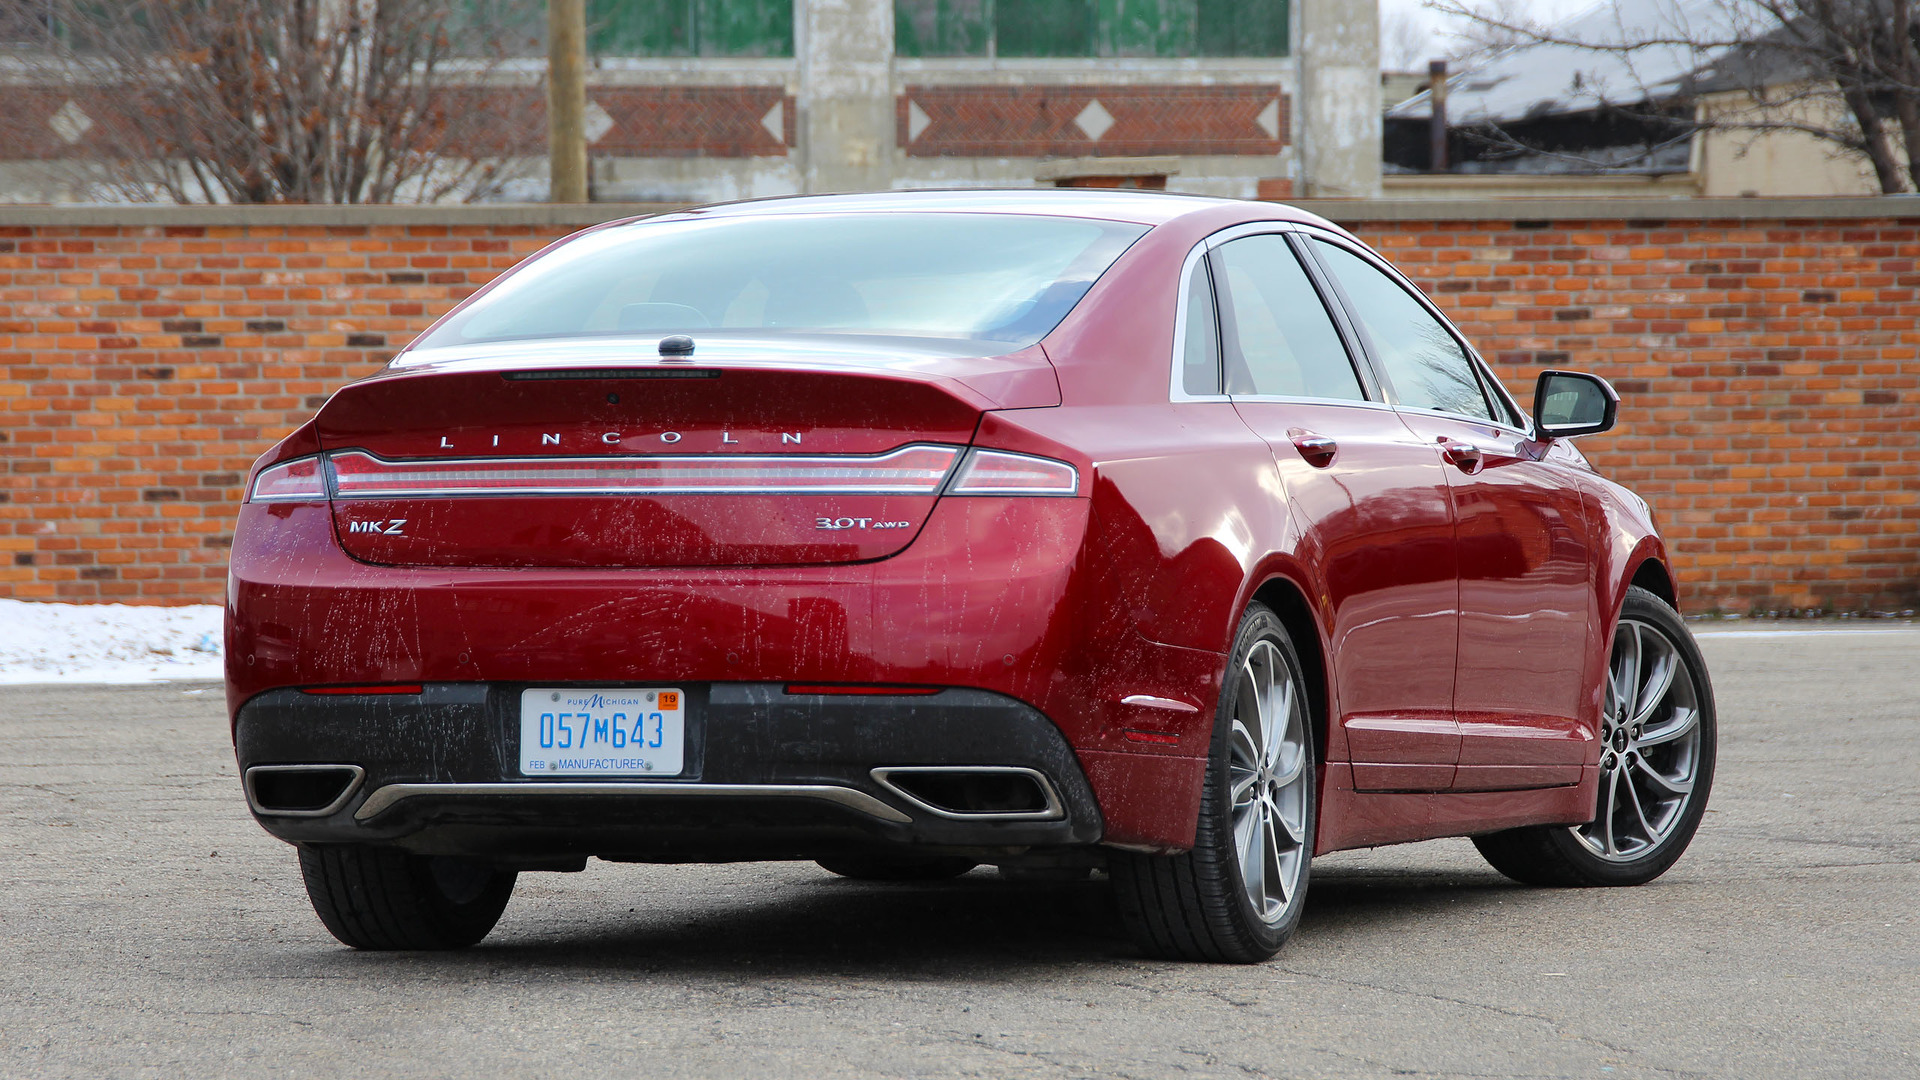 2021 Spy Shots Lincoln Mkz Sedan Photos